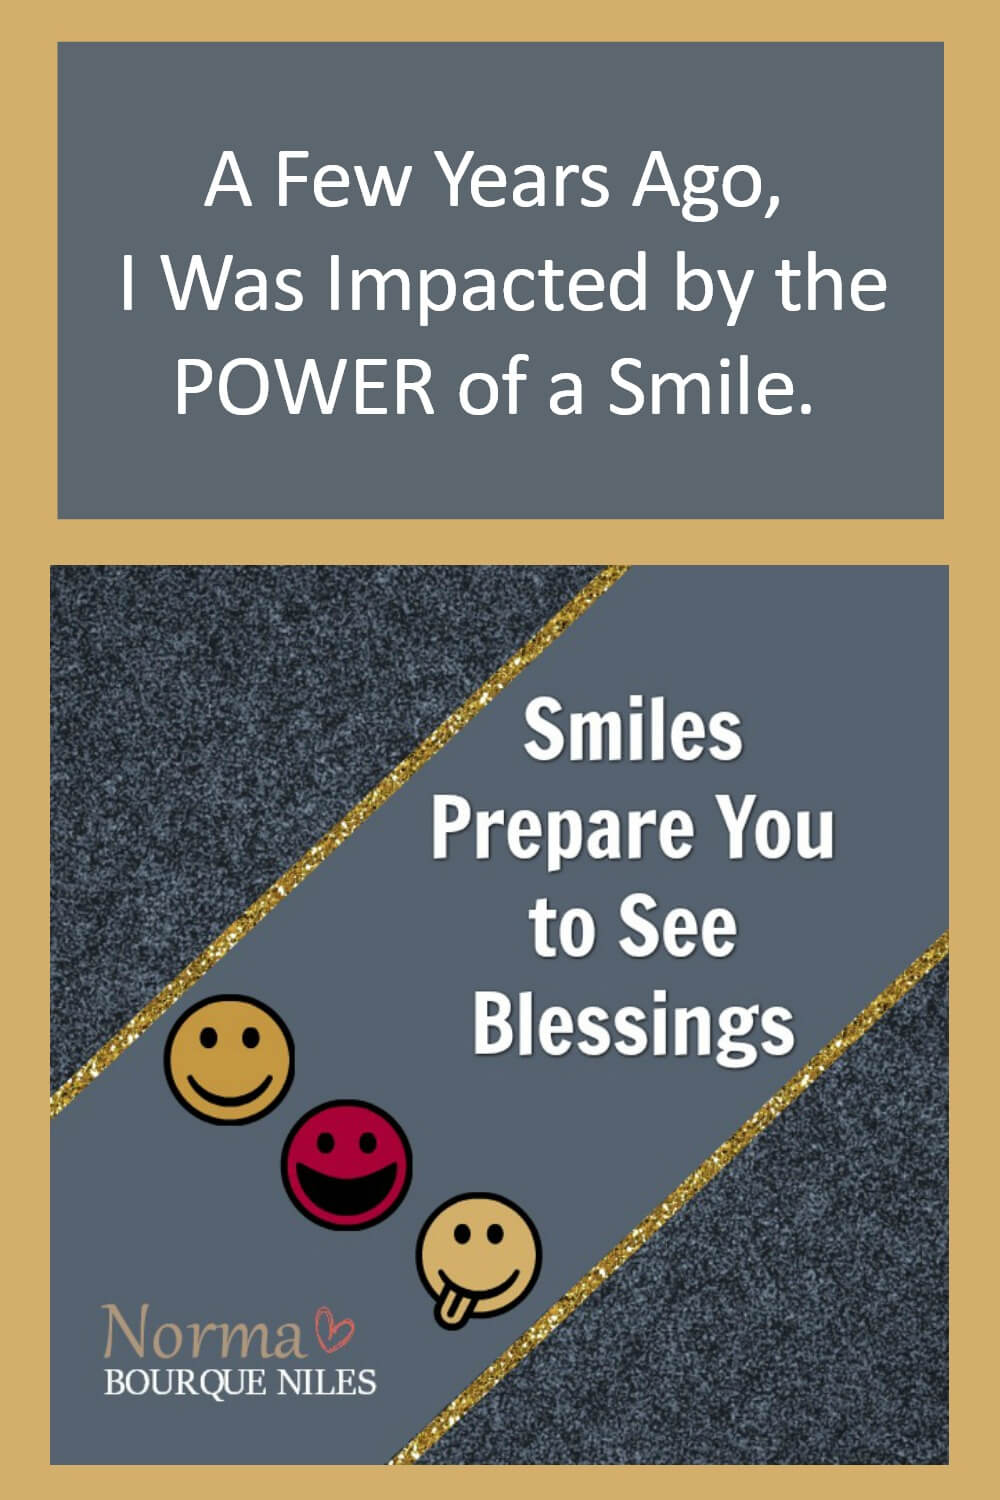 Smiles Prepare You to See a Blessing